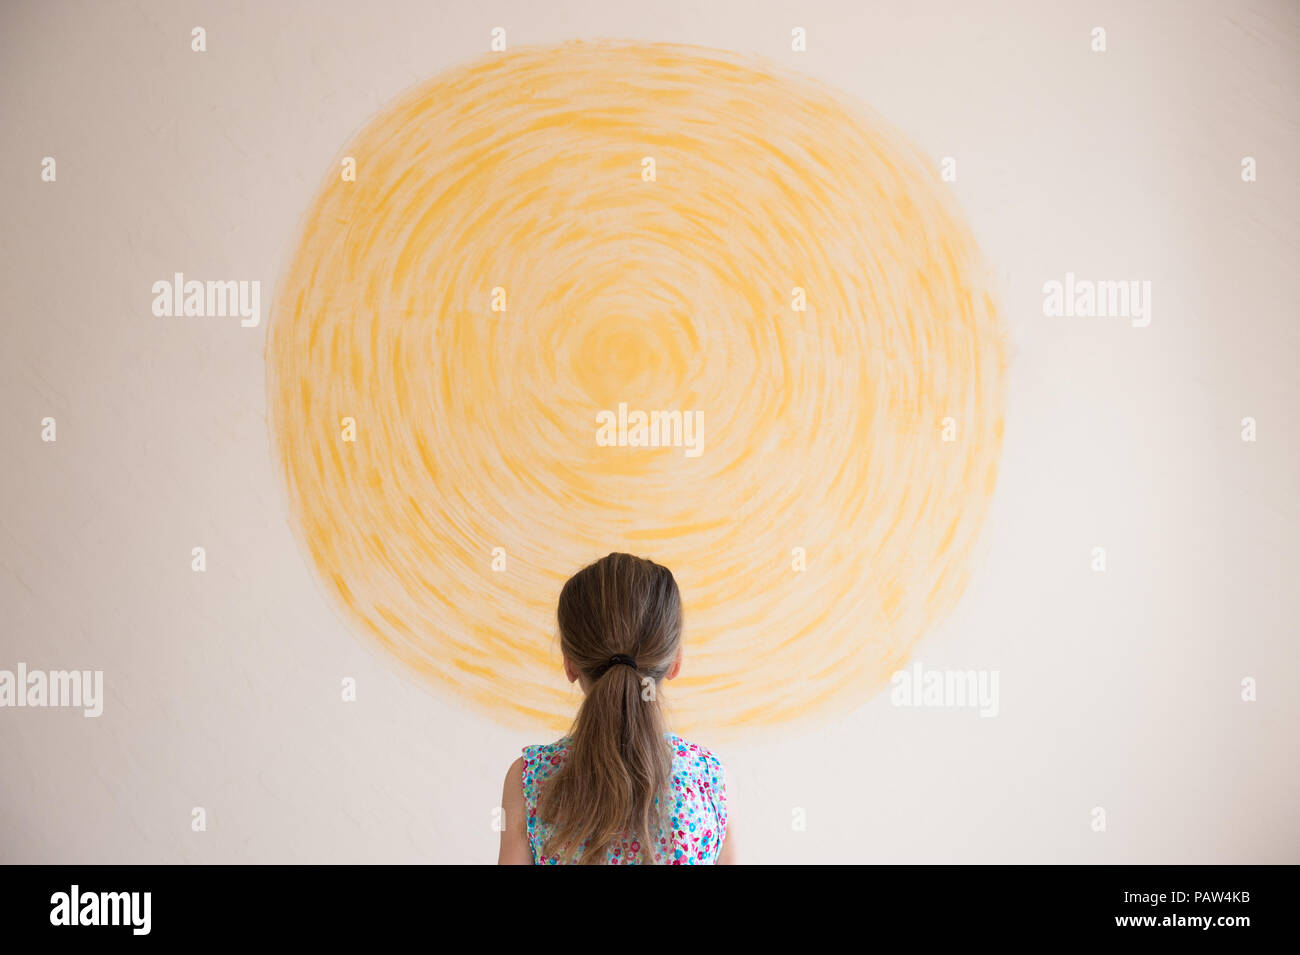 Little girl looking caucásico en sol amarillo pintado en la pared interior Imagen De Stock